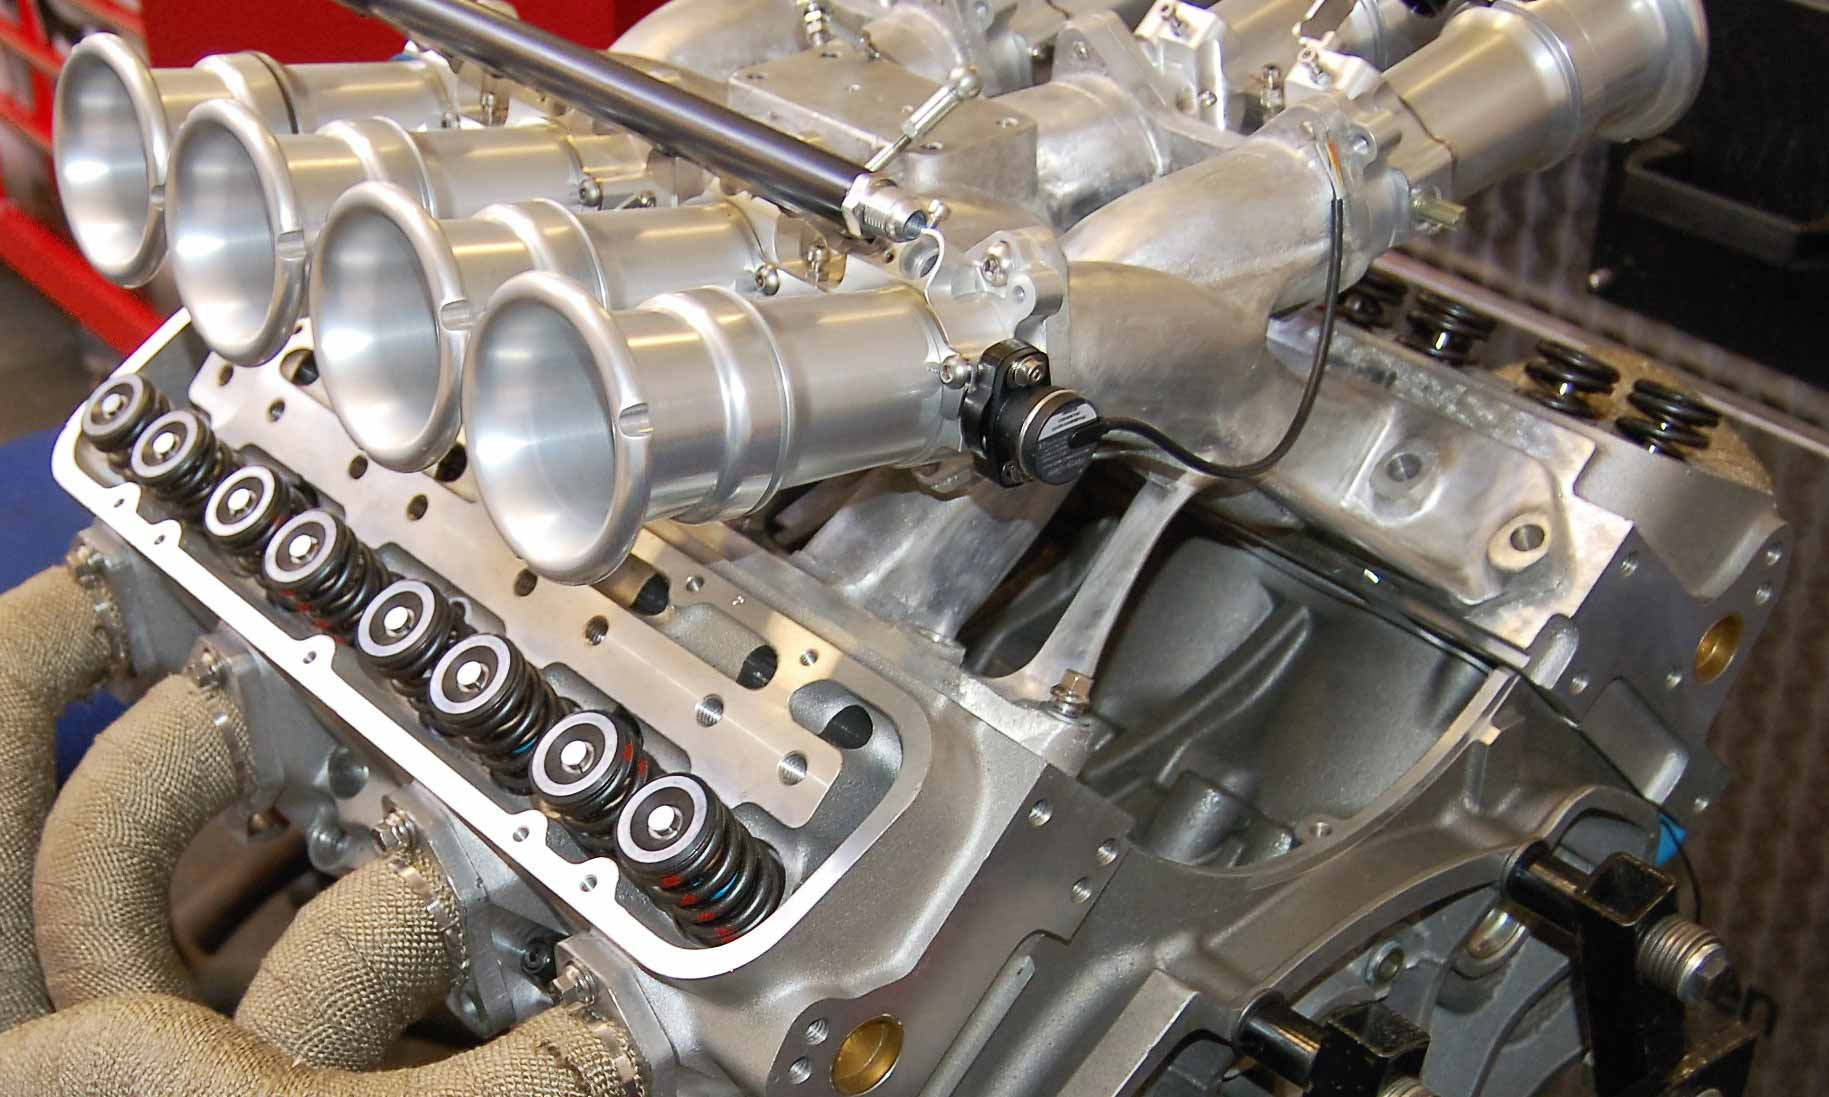 throttle bodies | Basset Down Balancing | Engine Balancing Dynamic Balancing and Engineering Services | Lambourn Woodlands Berkshire 01488 670246